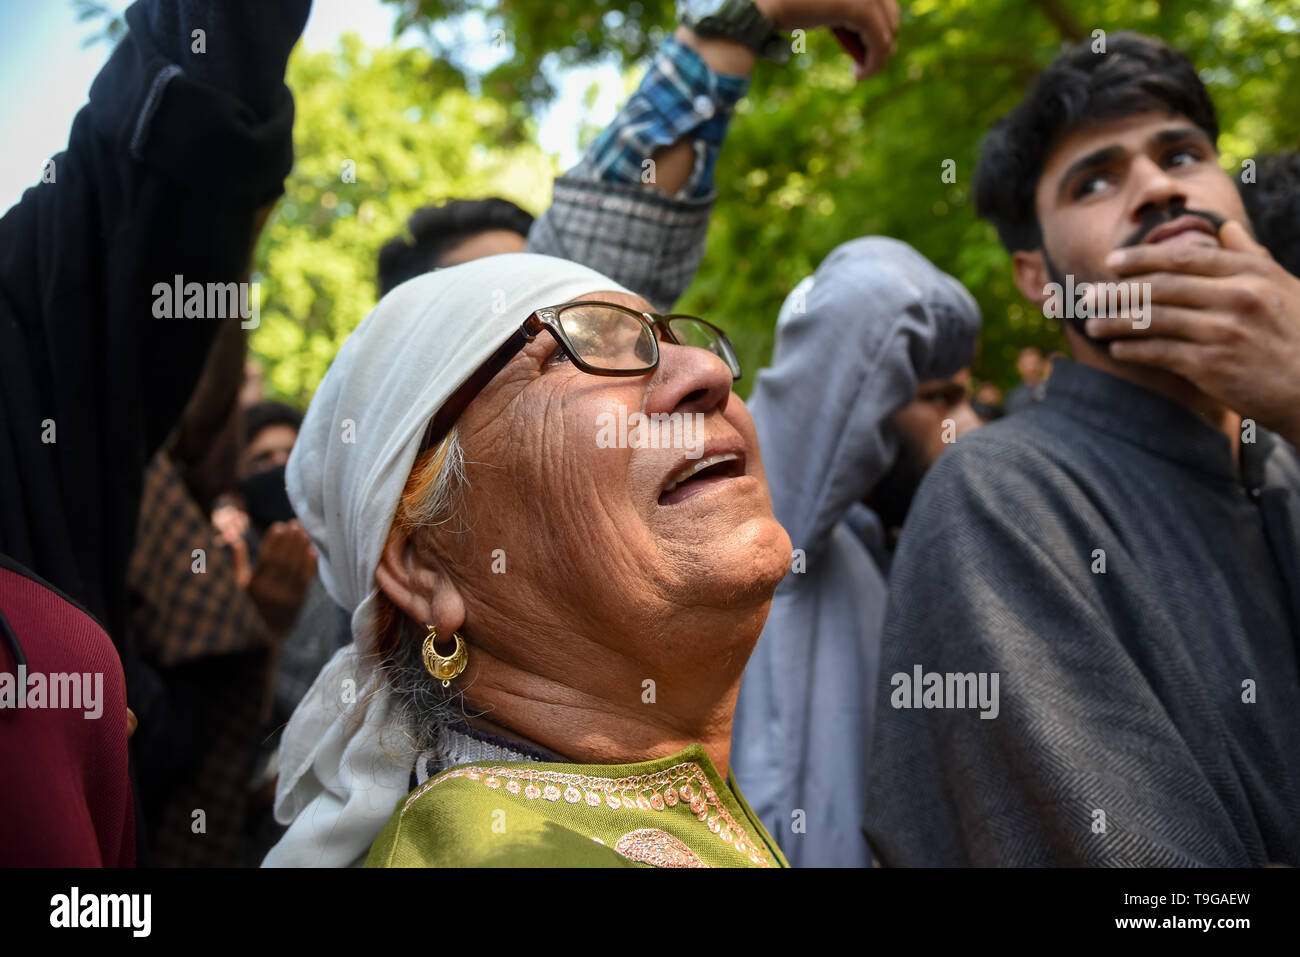 A Relative of Slain Showkat Ahmed seen mourning during the funeral ceremony at his residence in Pulwama, South of Srinagar. Thousands attended the funeral ceremony of slain Showkat Ahmed Dar at his residence in Panzgam Pulwama. Showkat was among the three Kashmiri Rebels killed in a gunfight in Pulwama. - Stock Image